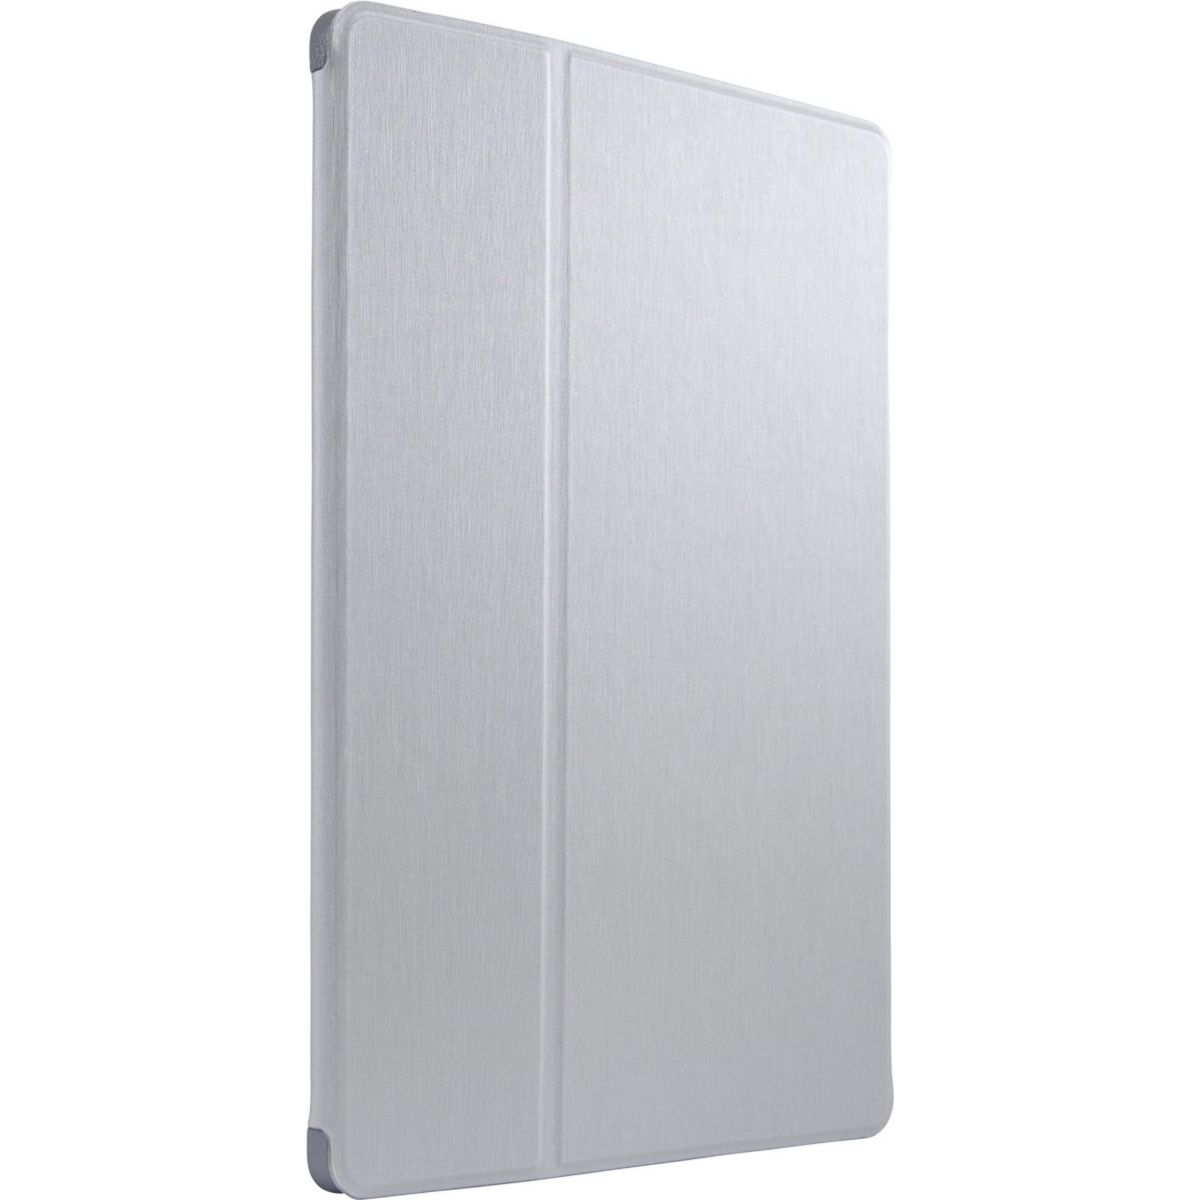 Folio CASELOGIC Porte-folio iPad Air 2 gris alu (photo)